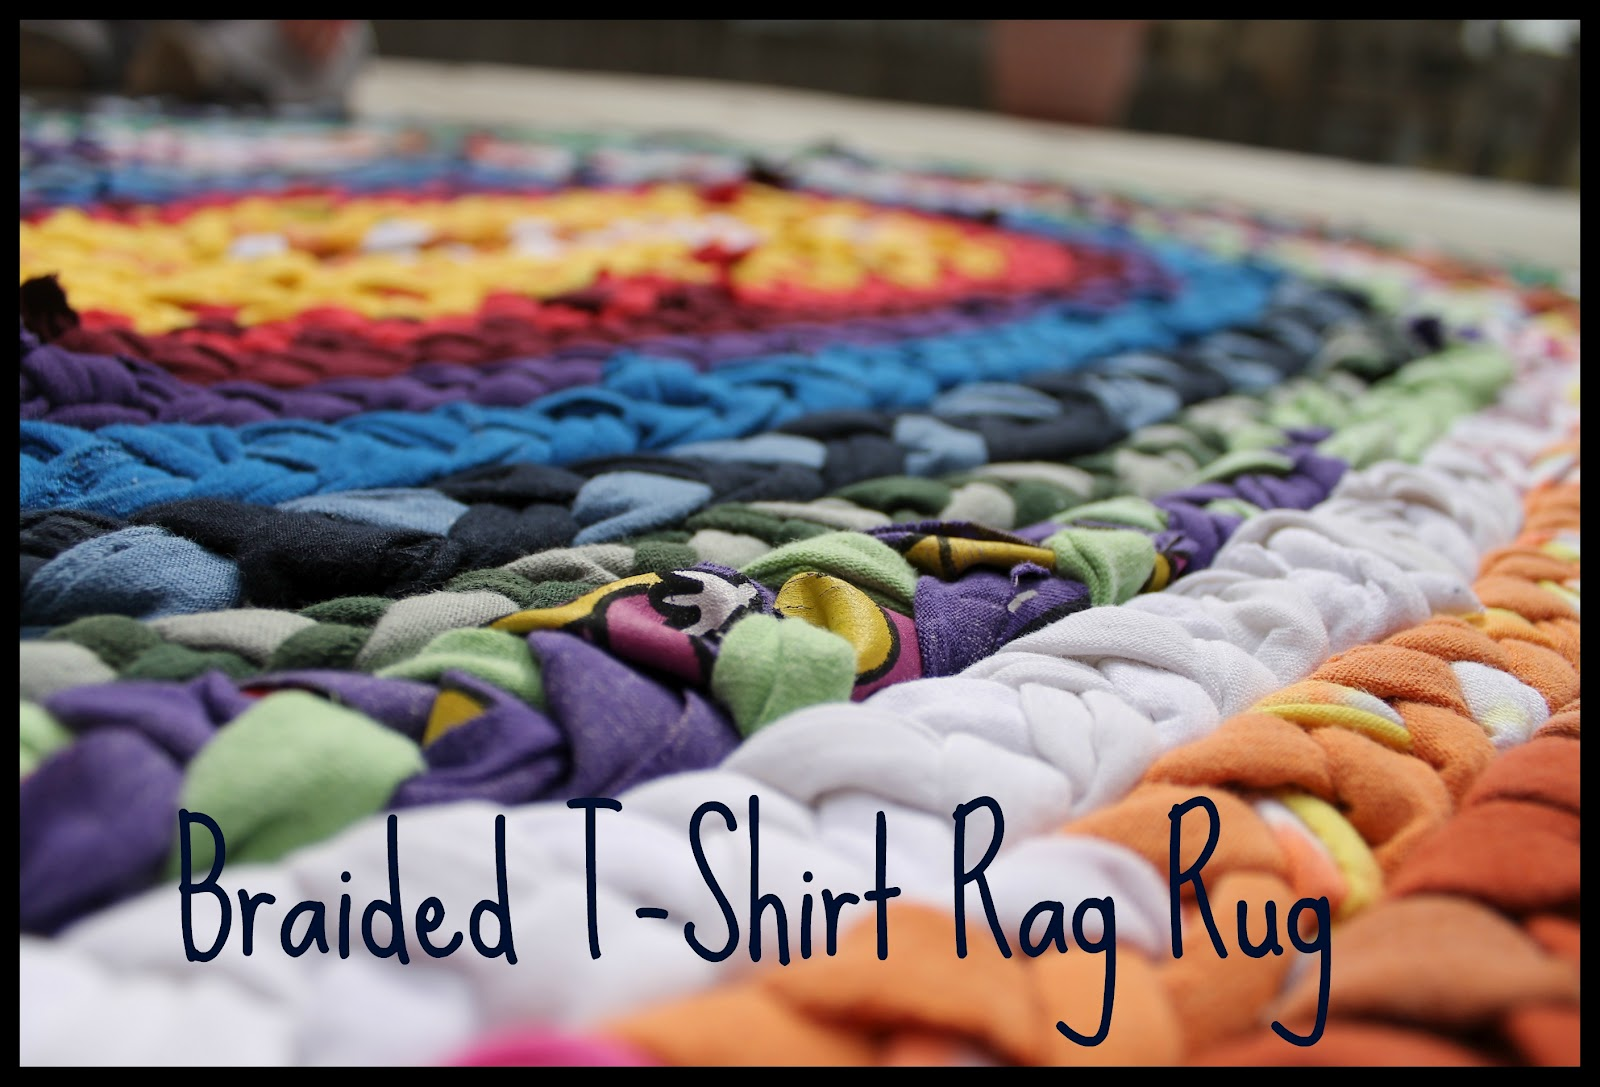 Friday Project Braided T Shirt Rag Rug